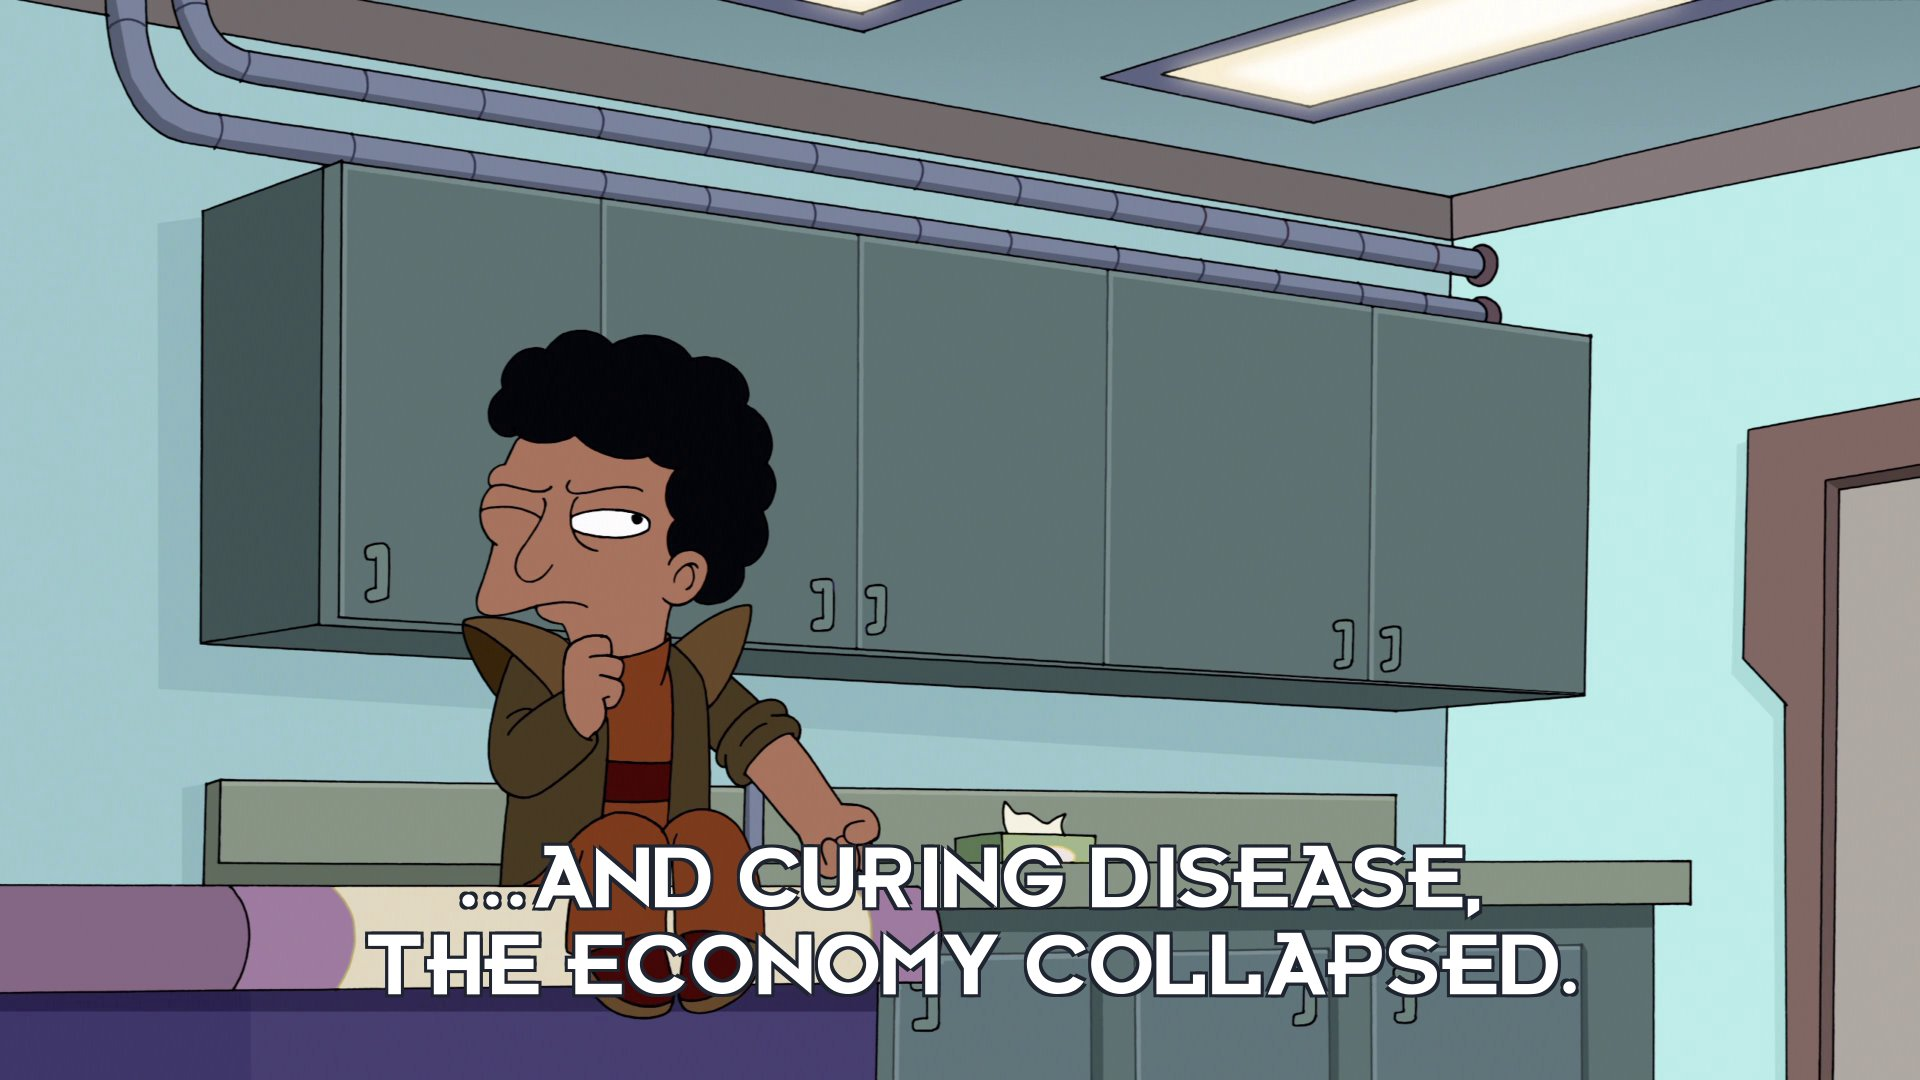 Sen Chris Travers: ...and curing disease, the economy collapsed.